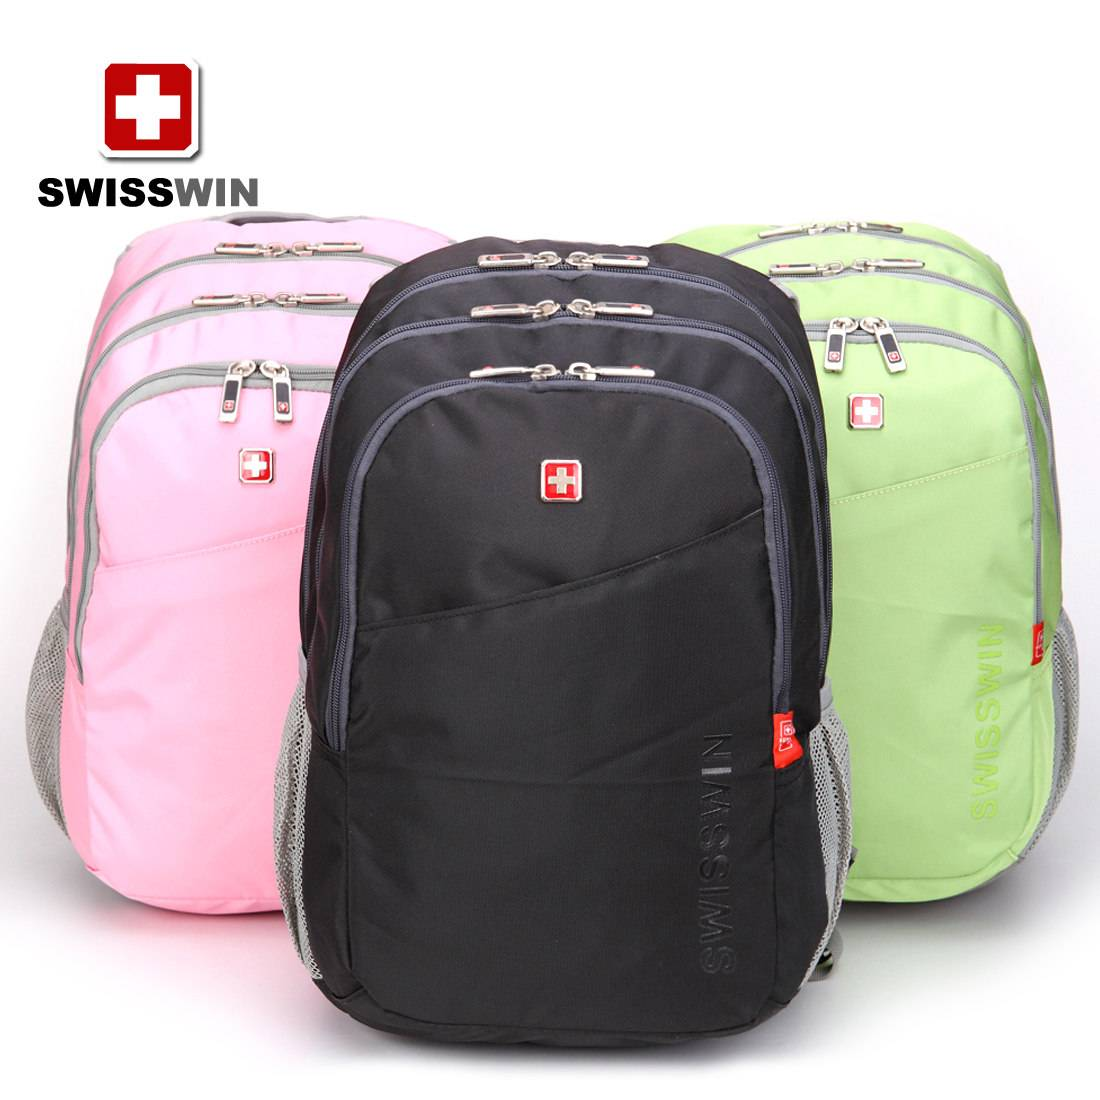 SWISSWIN Army Knife Backpack travel backpack computer backpack student recreational sports backpack